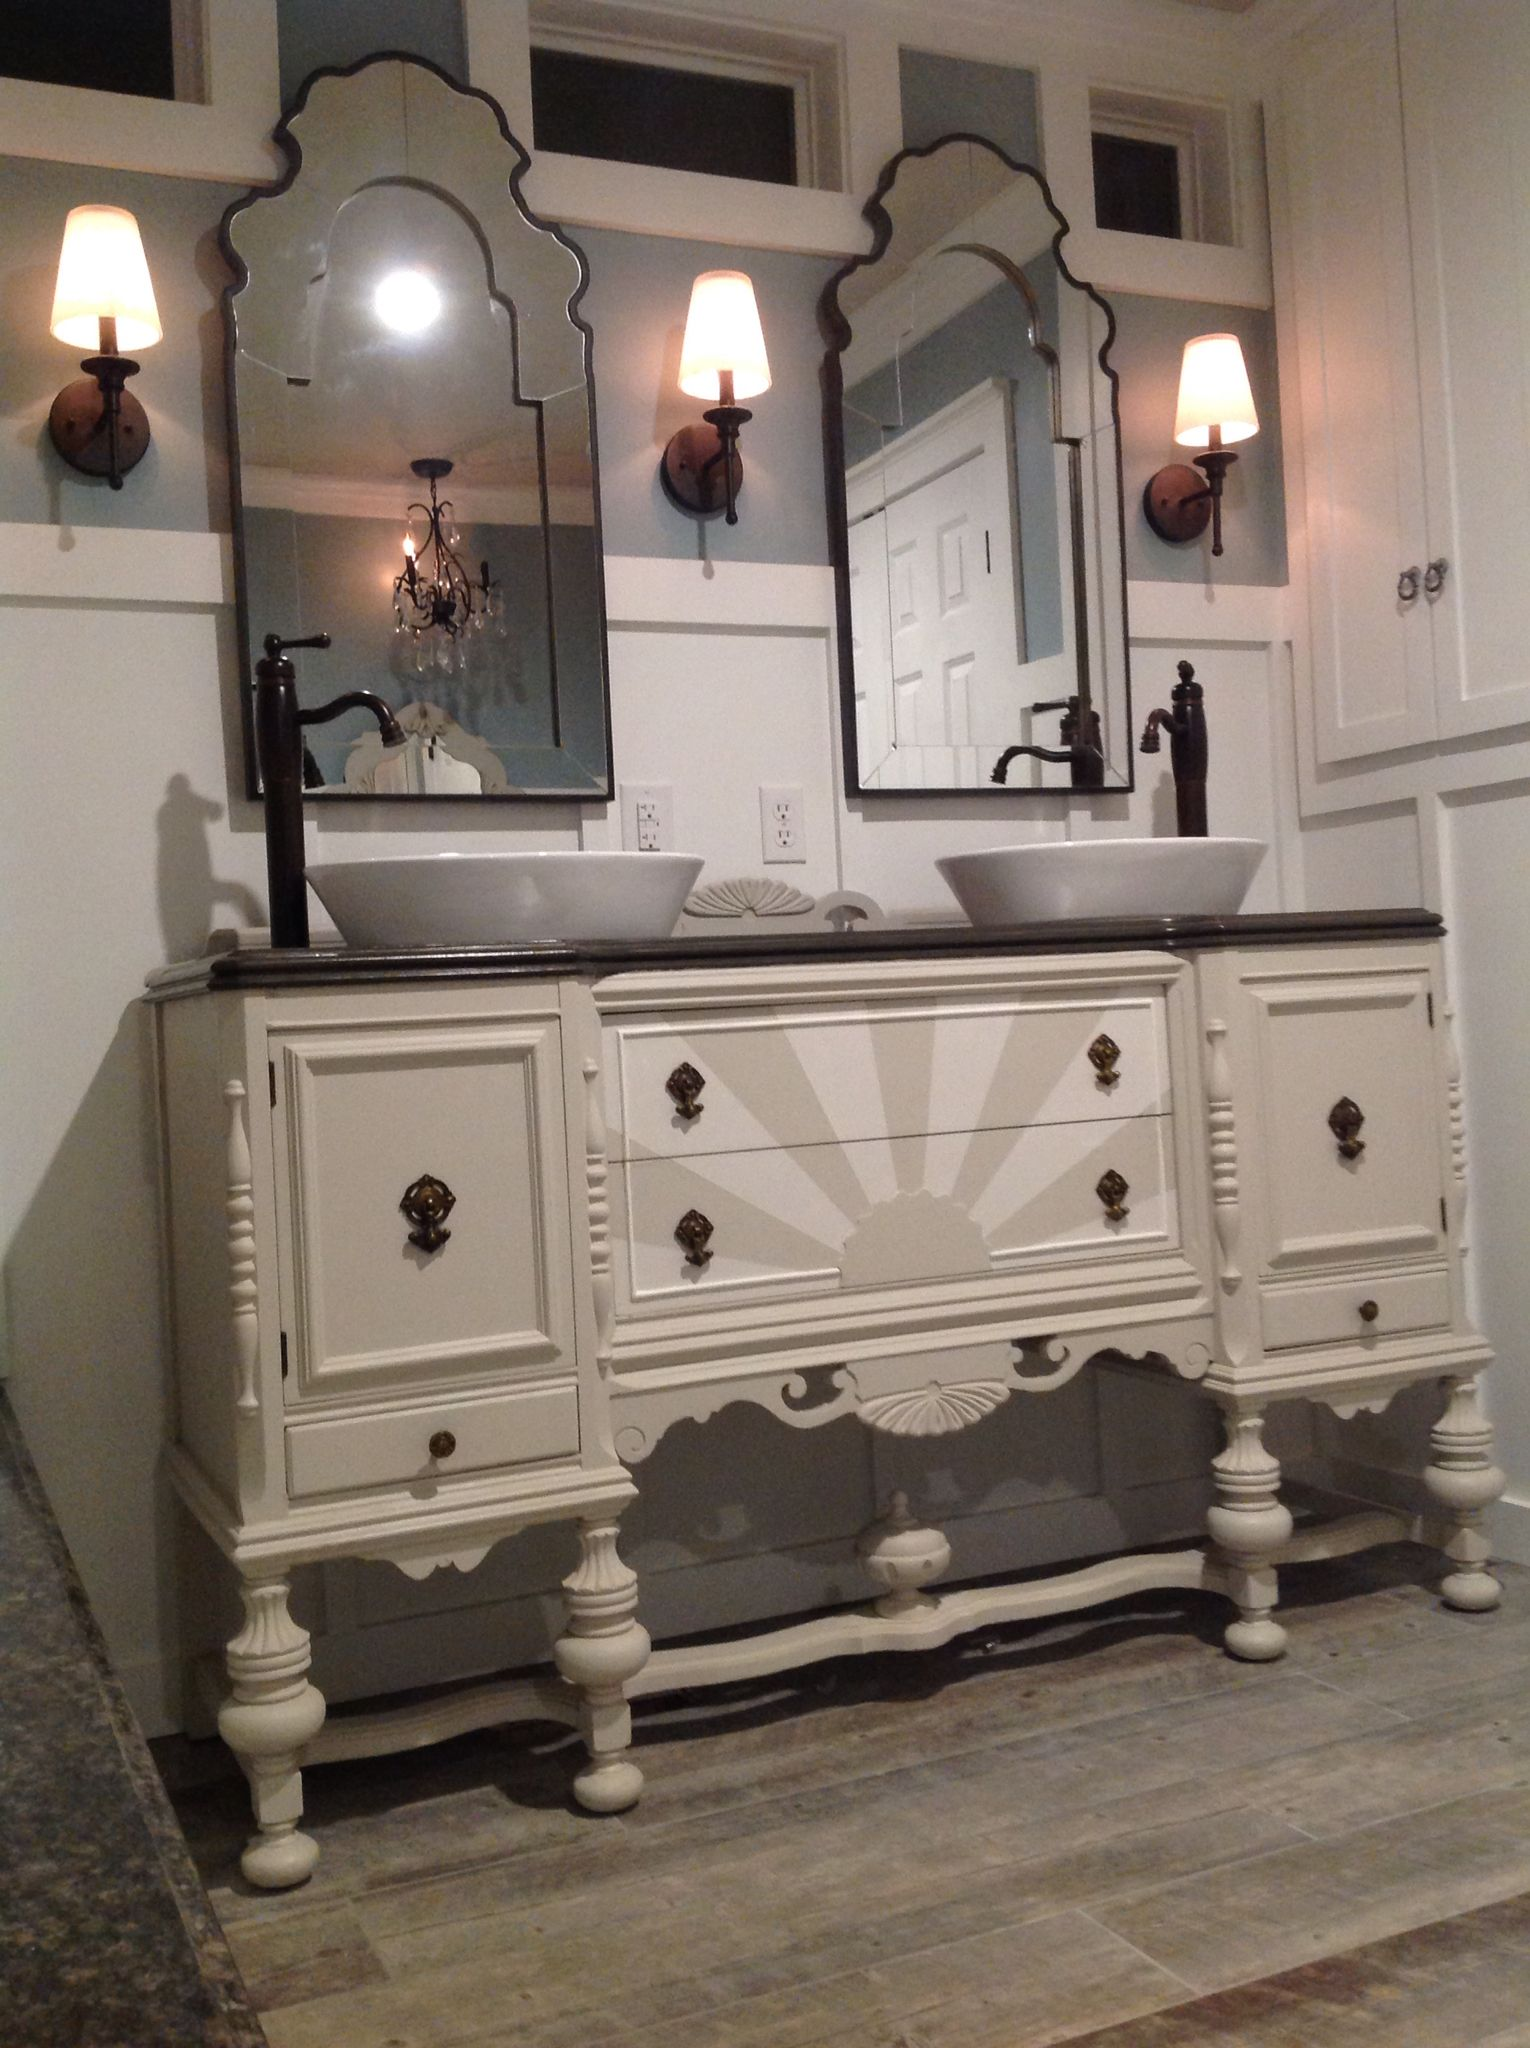 Our Antique Sideboard Buffet Repurposed Into A Bathroom Vanity By My Fabulous Hubby Bathroom Vanity Makeover Bathroom Vanity Remodel Antique Sideboard Buffet